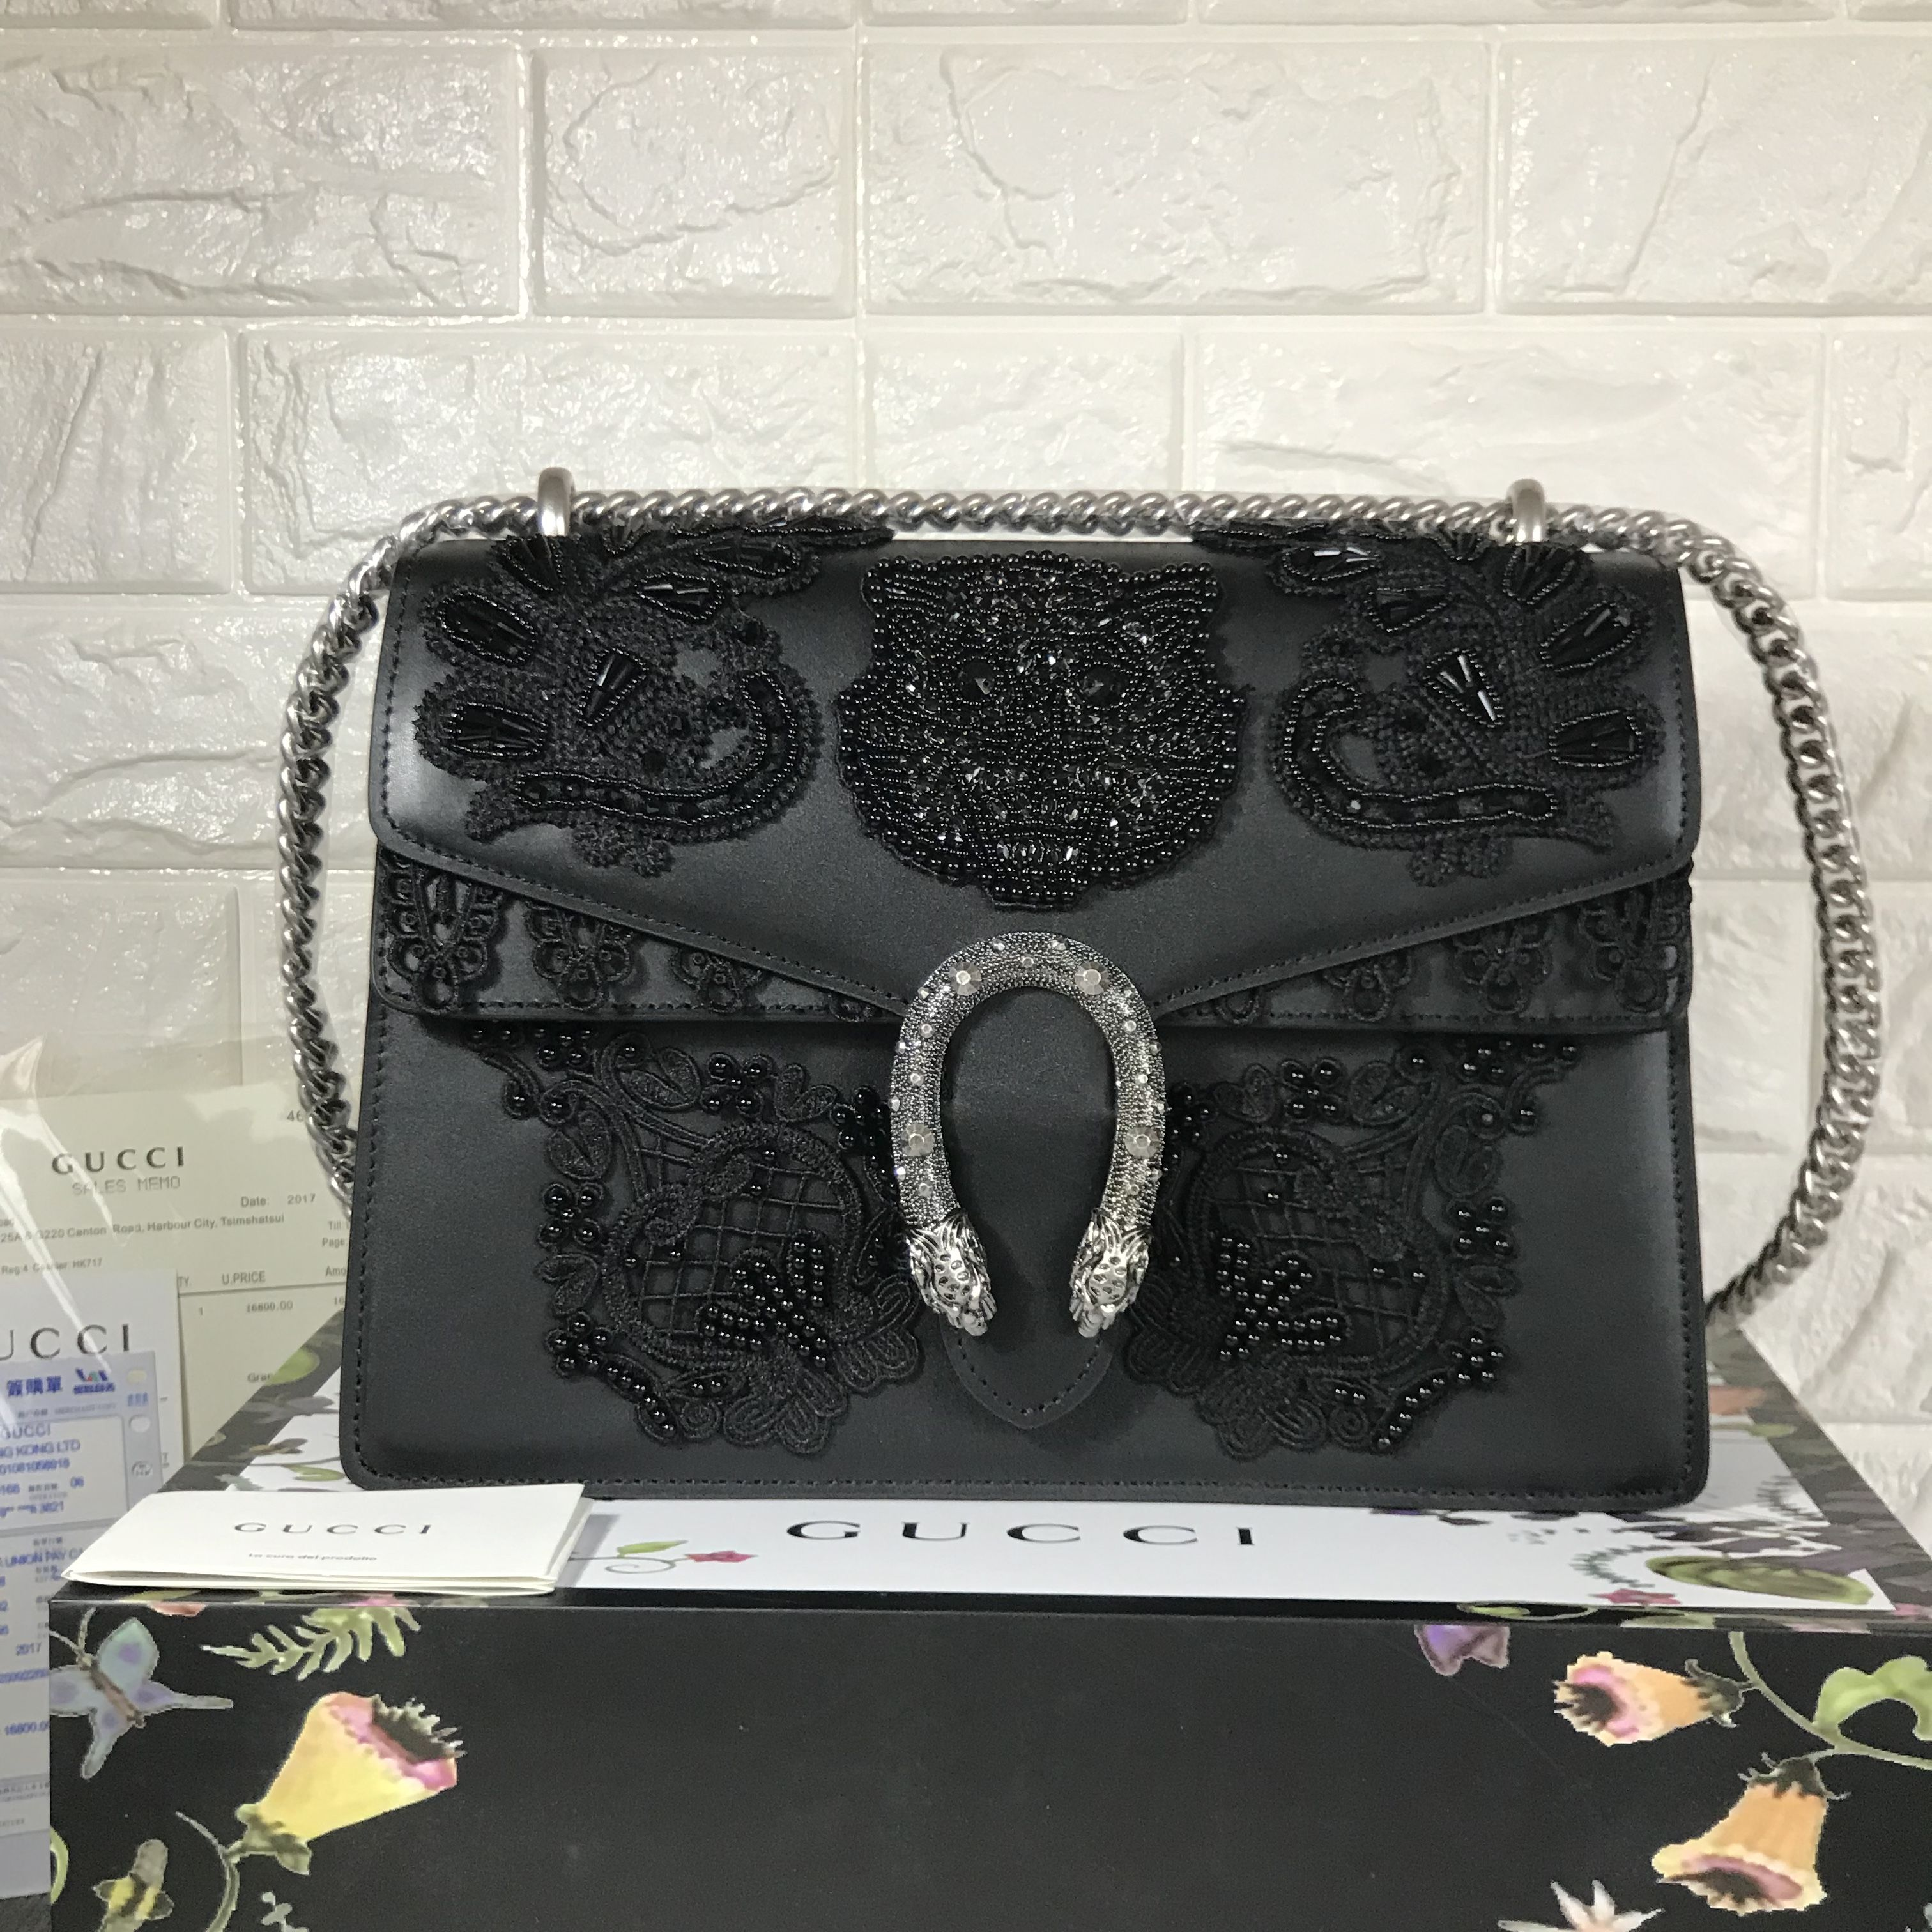 Gucci Dionysus bag medium 30cm with embroidered lace beads original leather  version b3b2e55129f